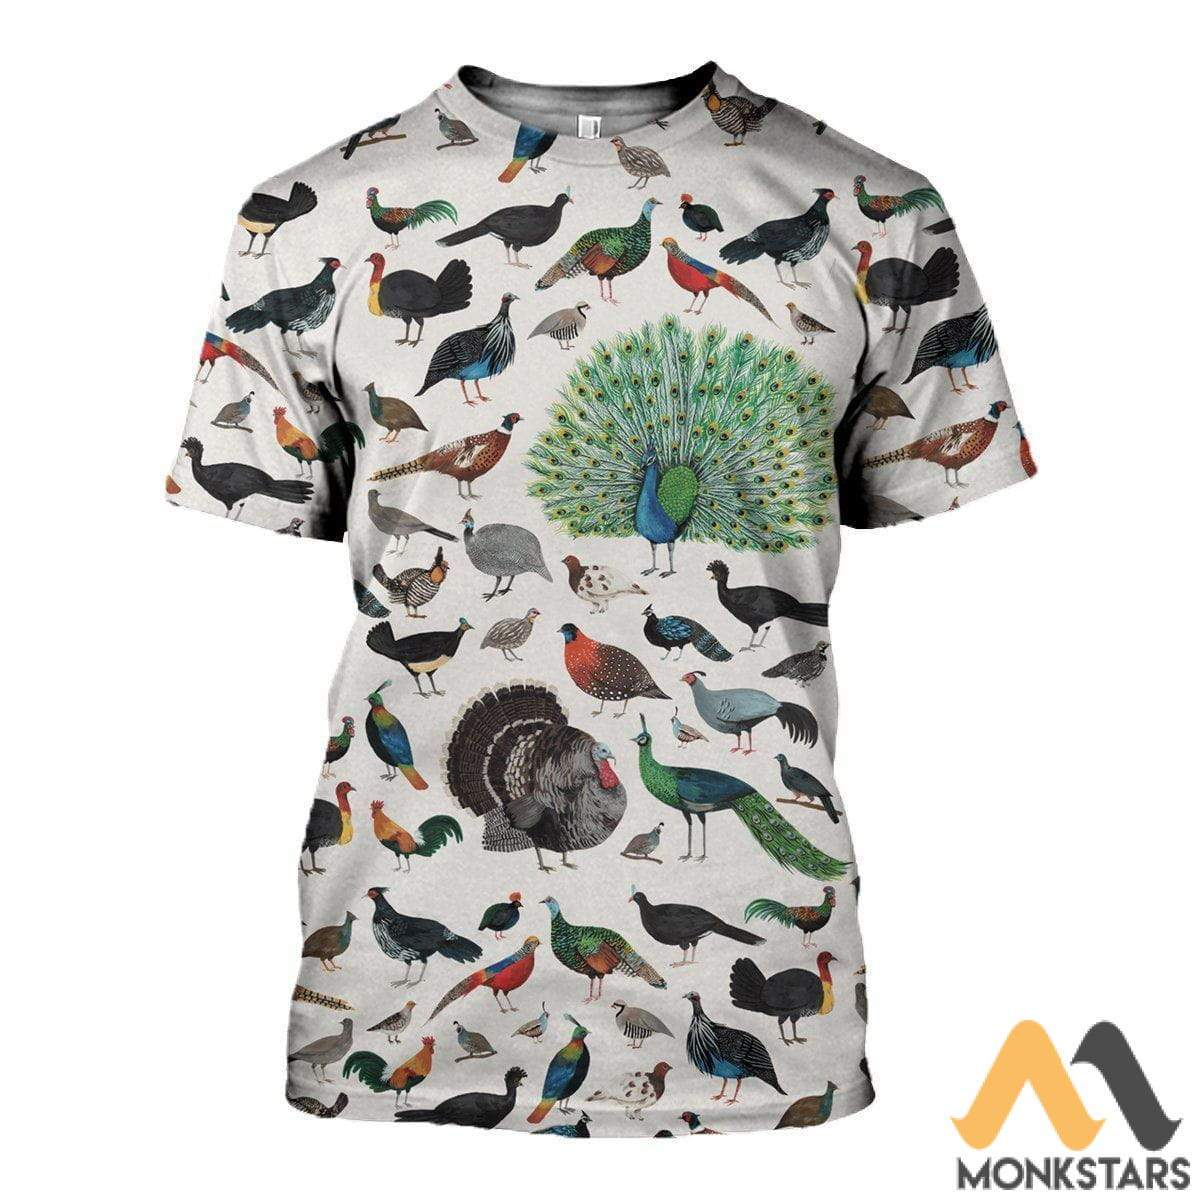 3D All Over Printed Galliformes Shirts And Shorts T-Shirt / S Clothes